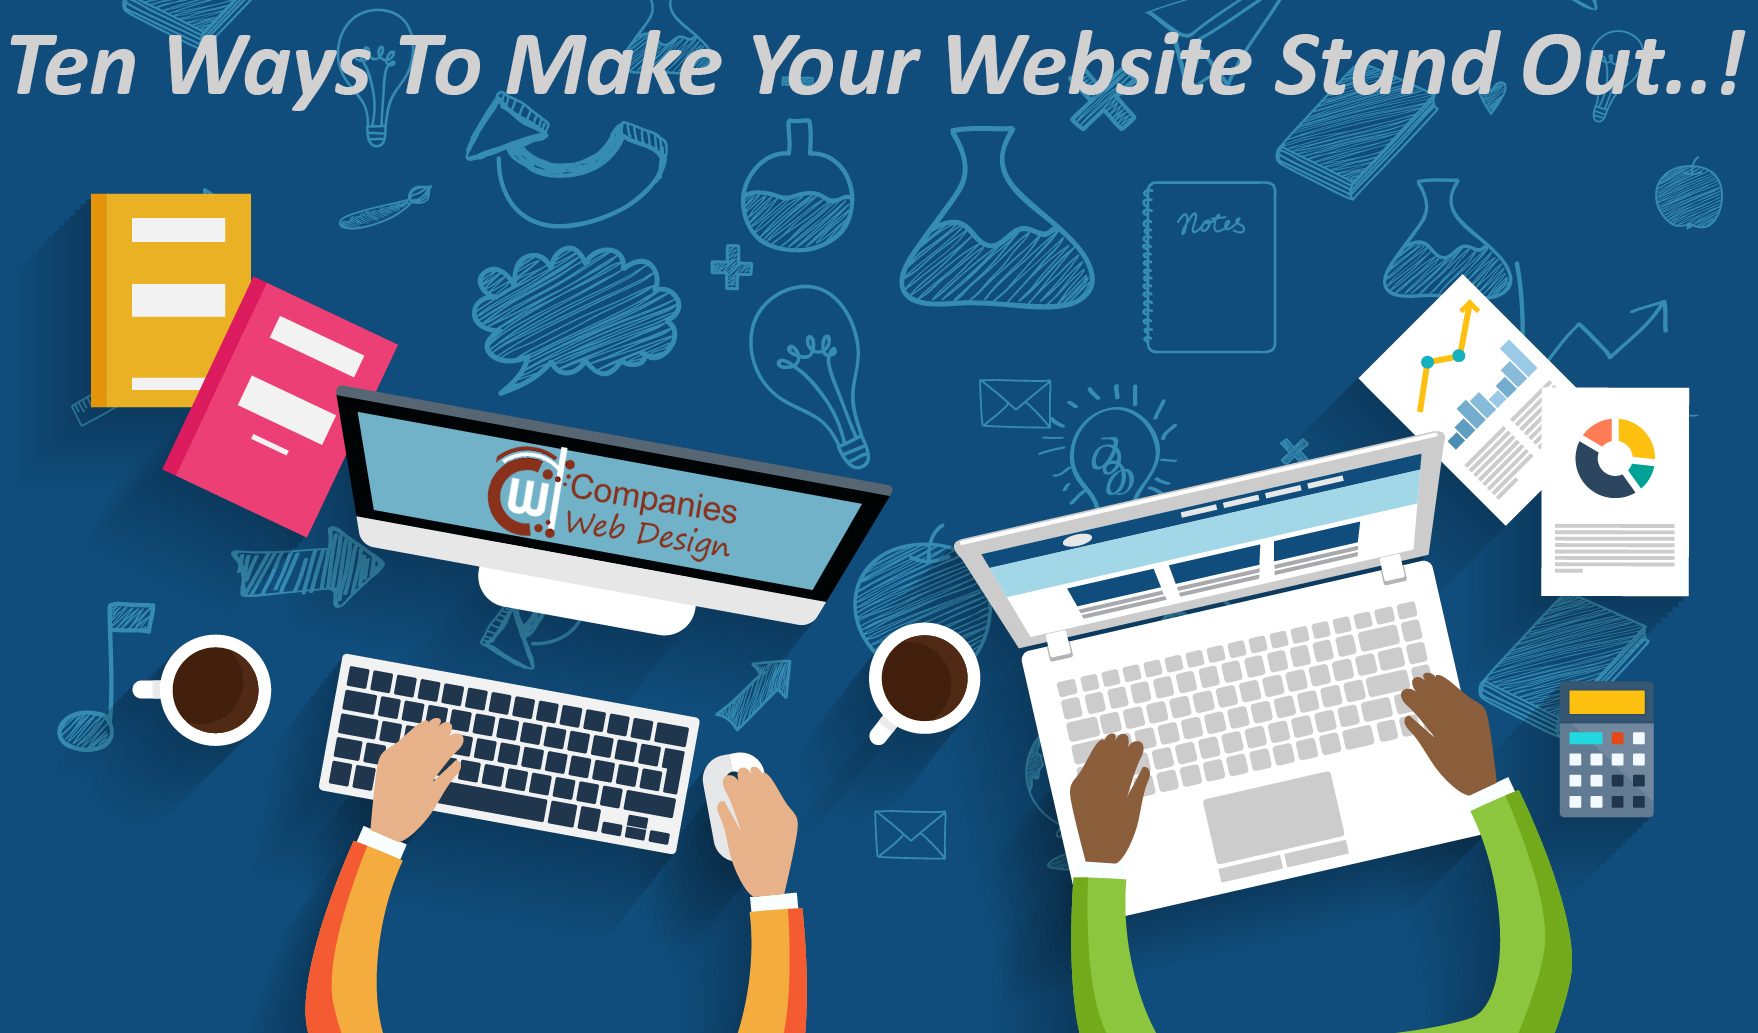 Ten Ways To Make Your Websute Stand Out